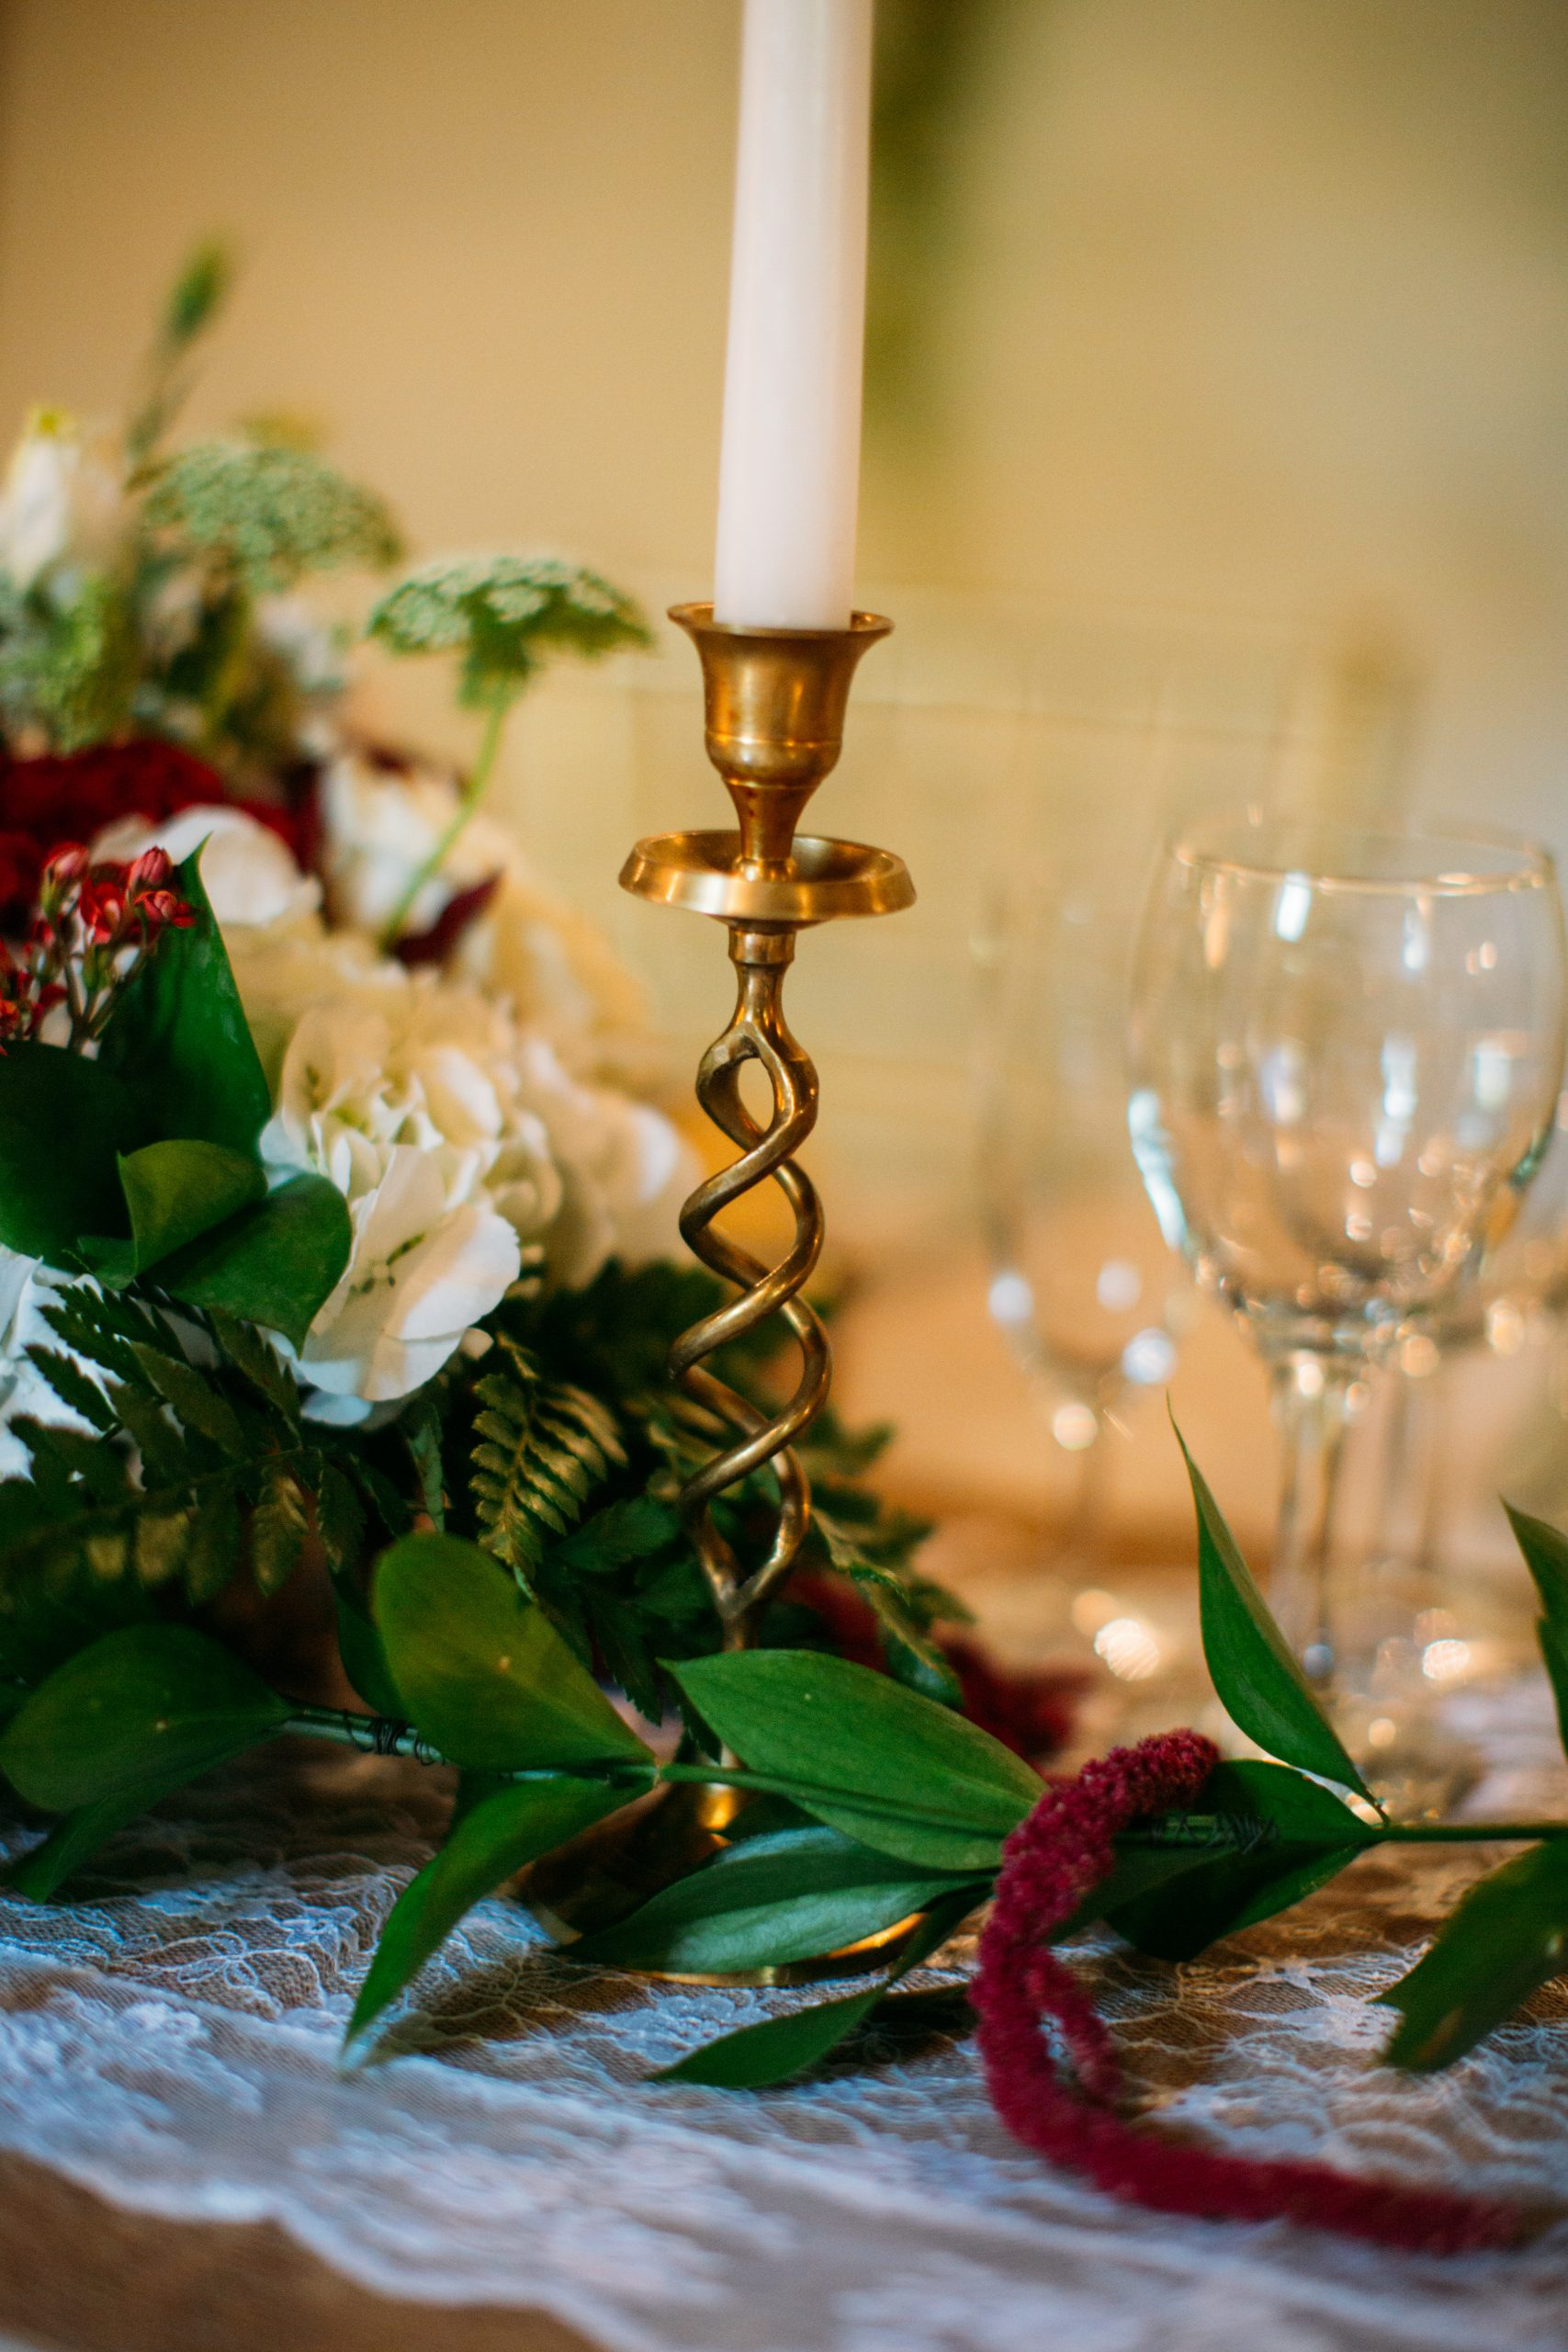 Candlestick And Flower Arrangements scaled